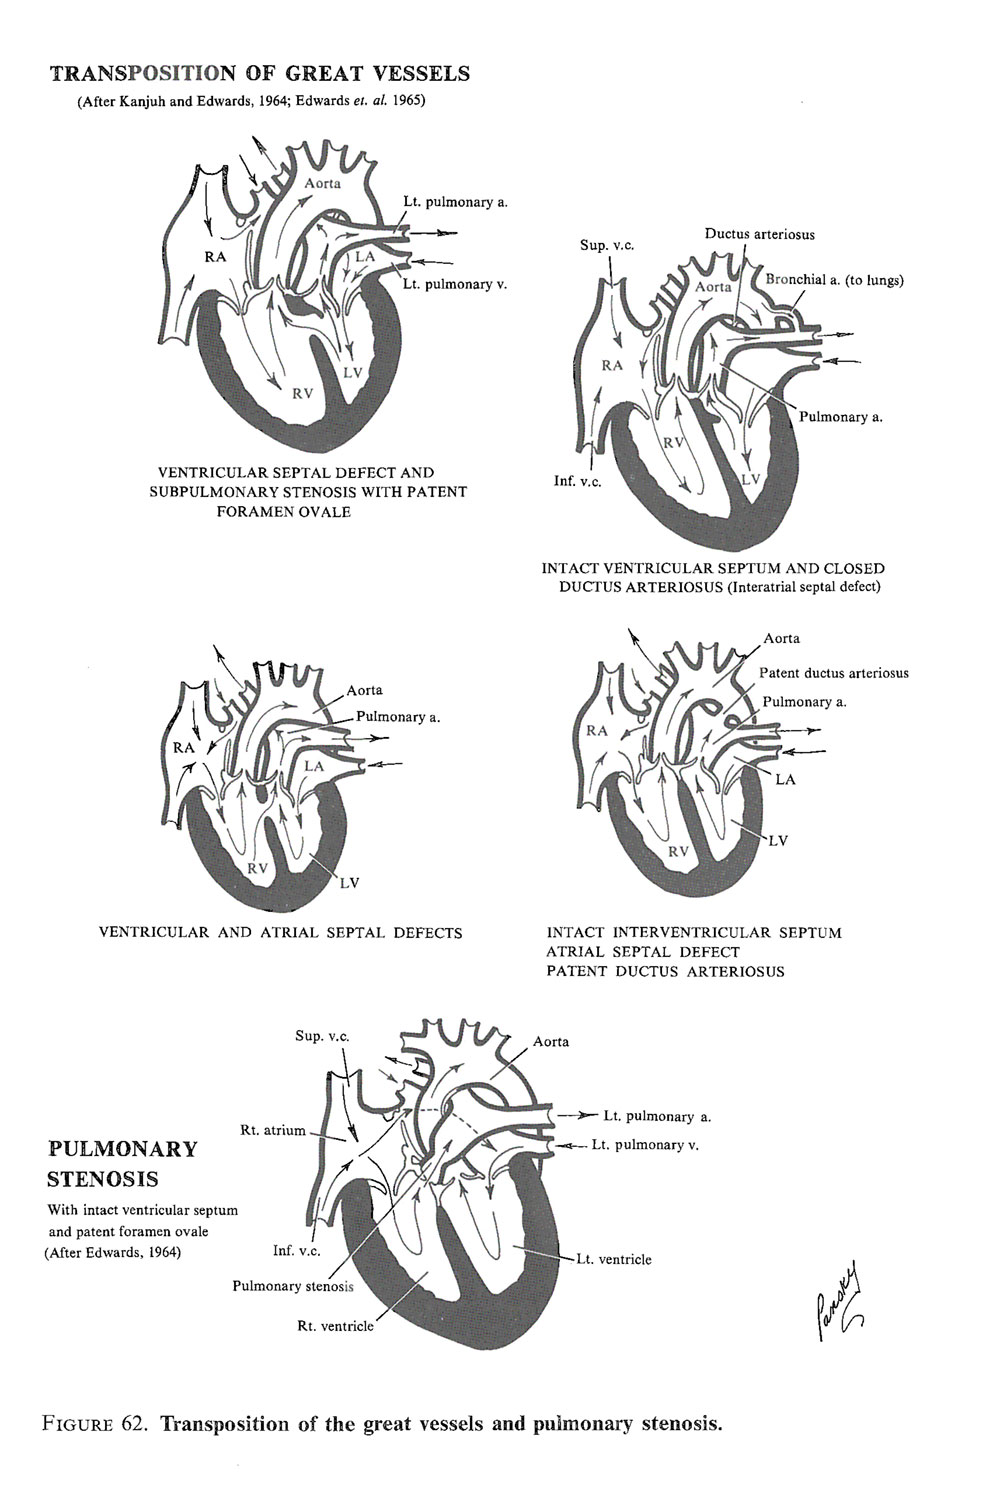 malformations of the heart and  great vessels: image #3